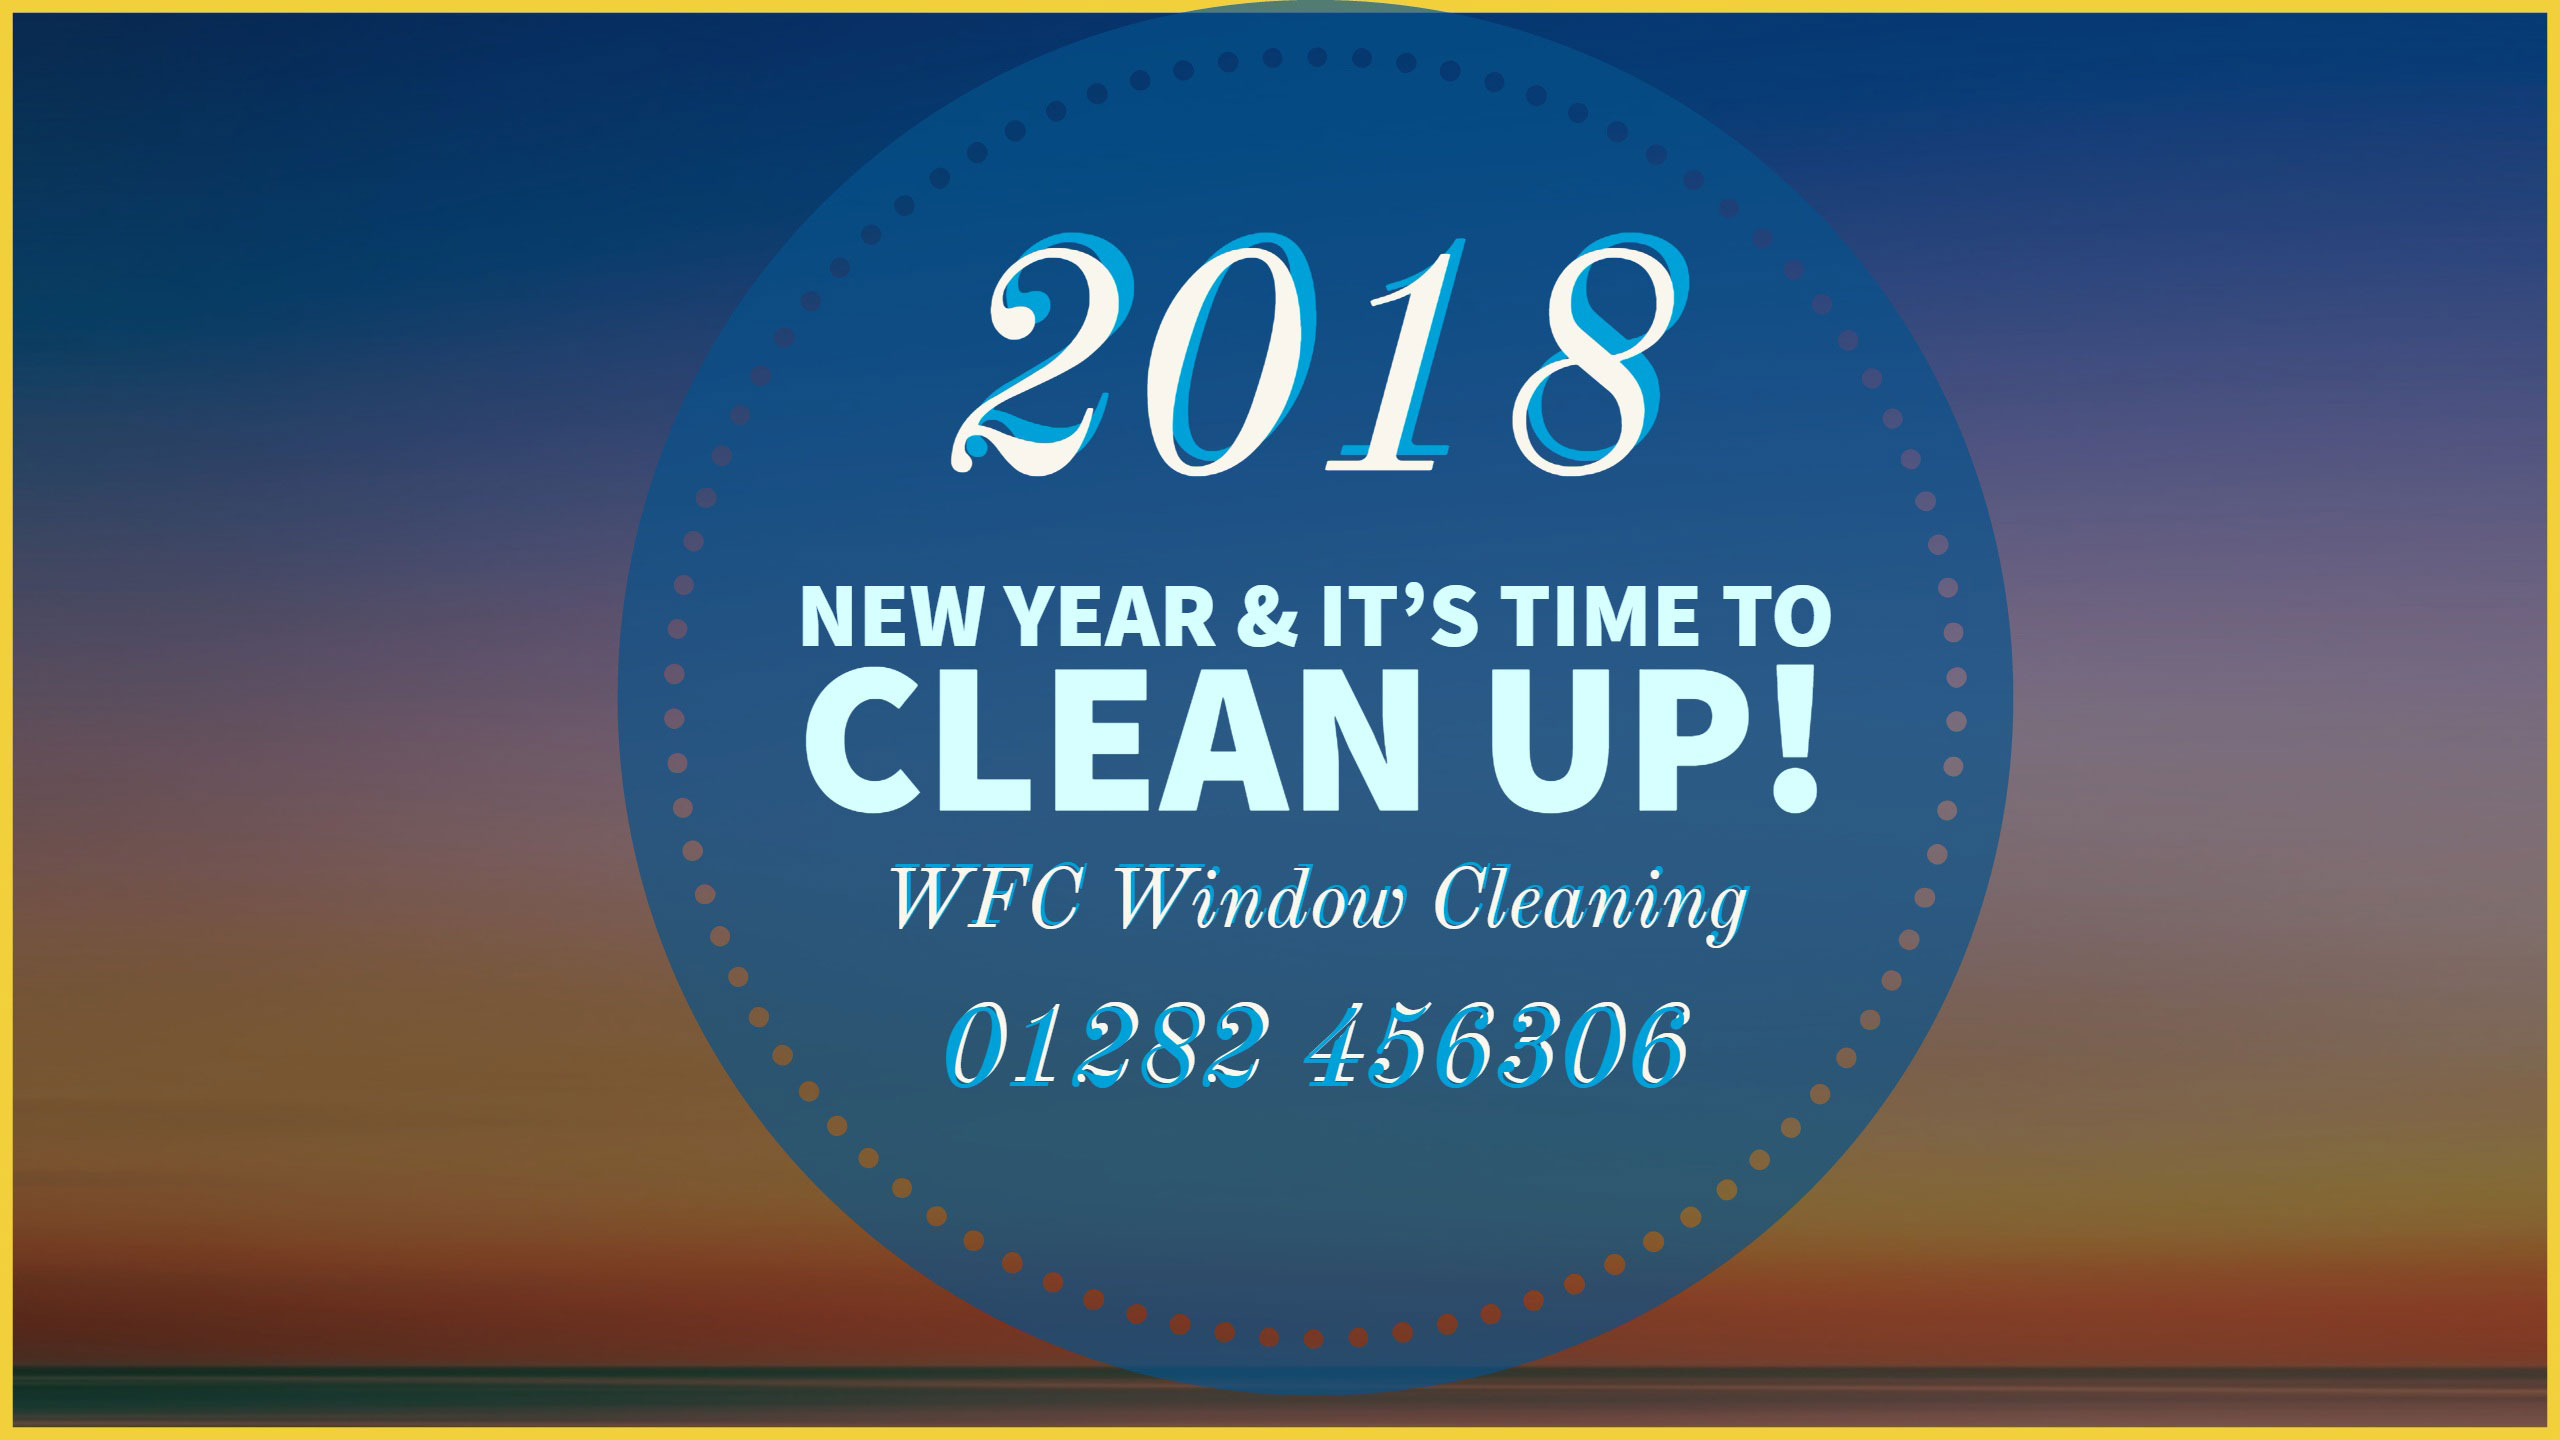 Clean up your home for 2018